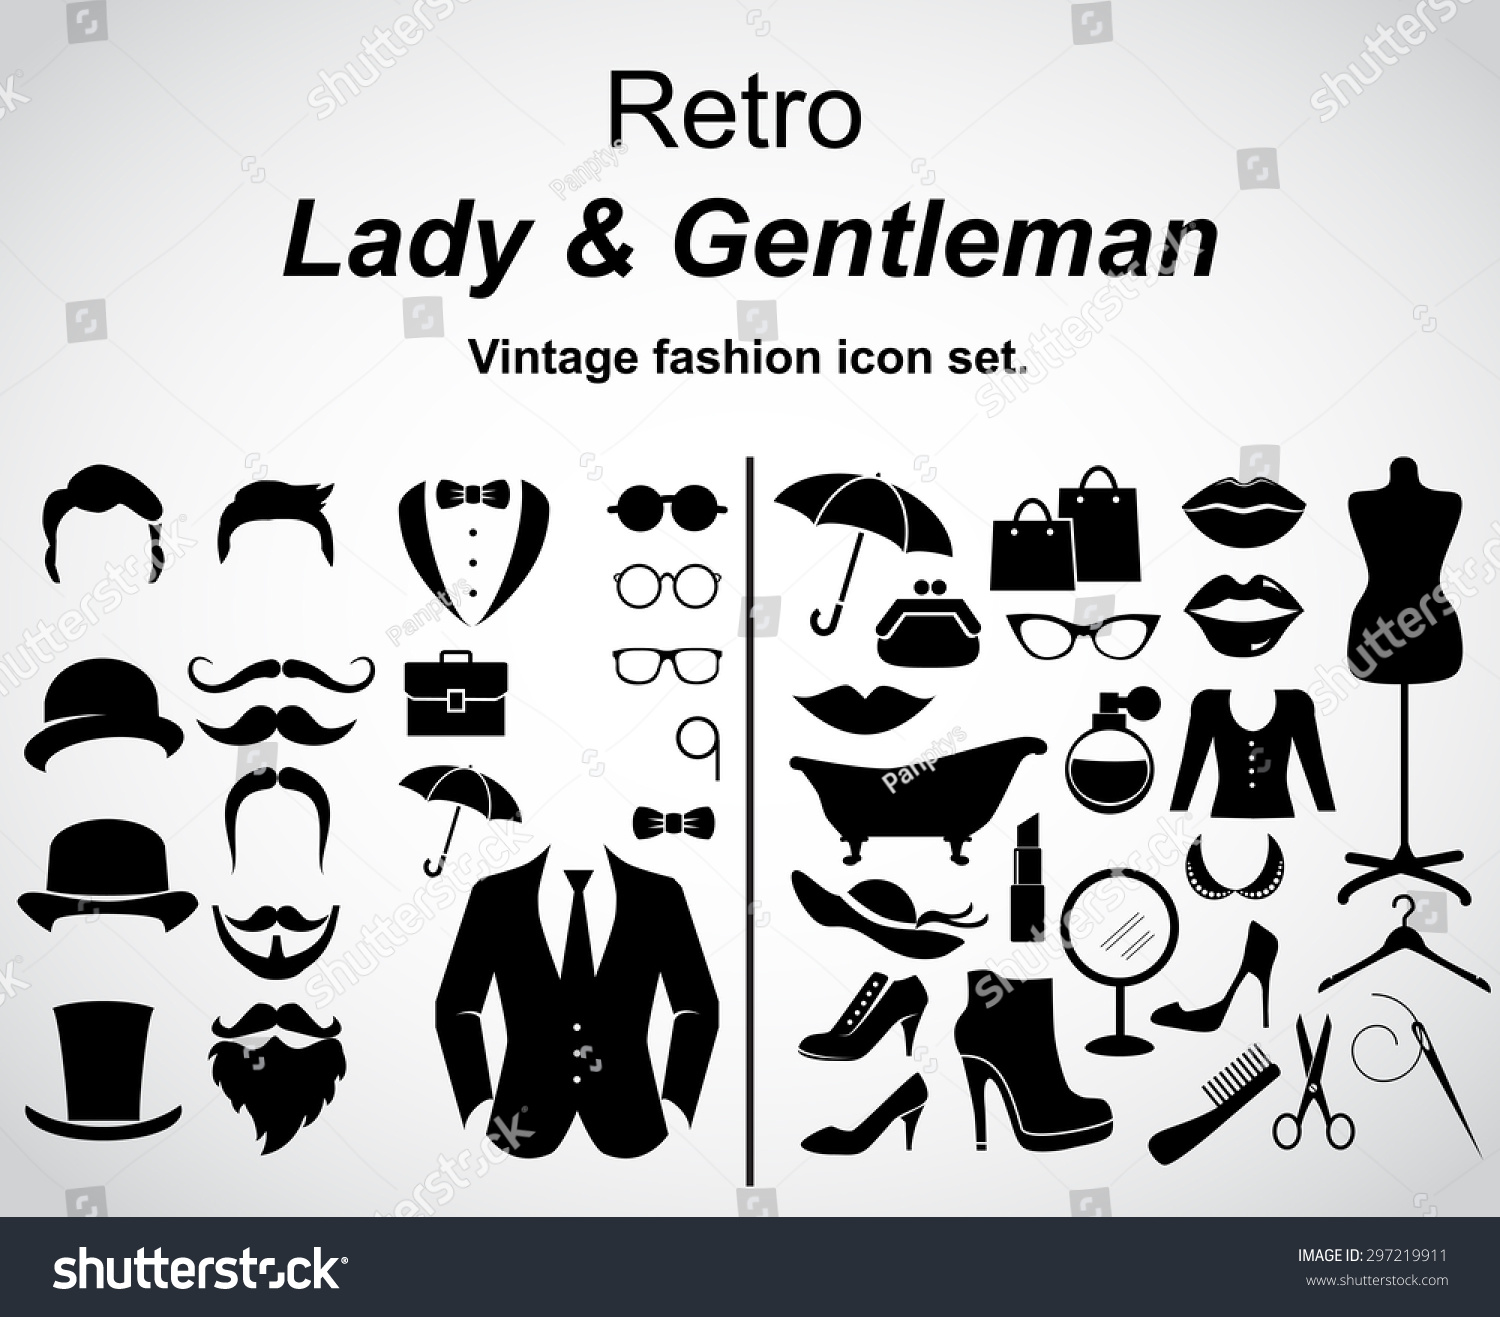 Retro Gentleman And Lady Vintage Fashion Icon Set Vector Art 297219911 Shutterstock